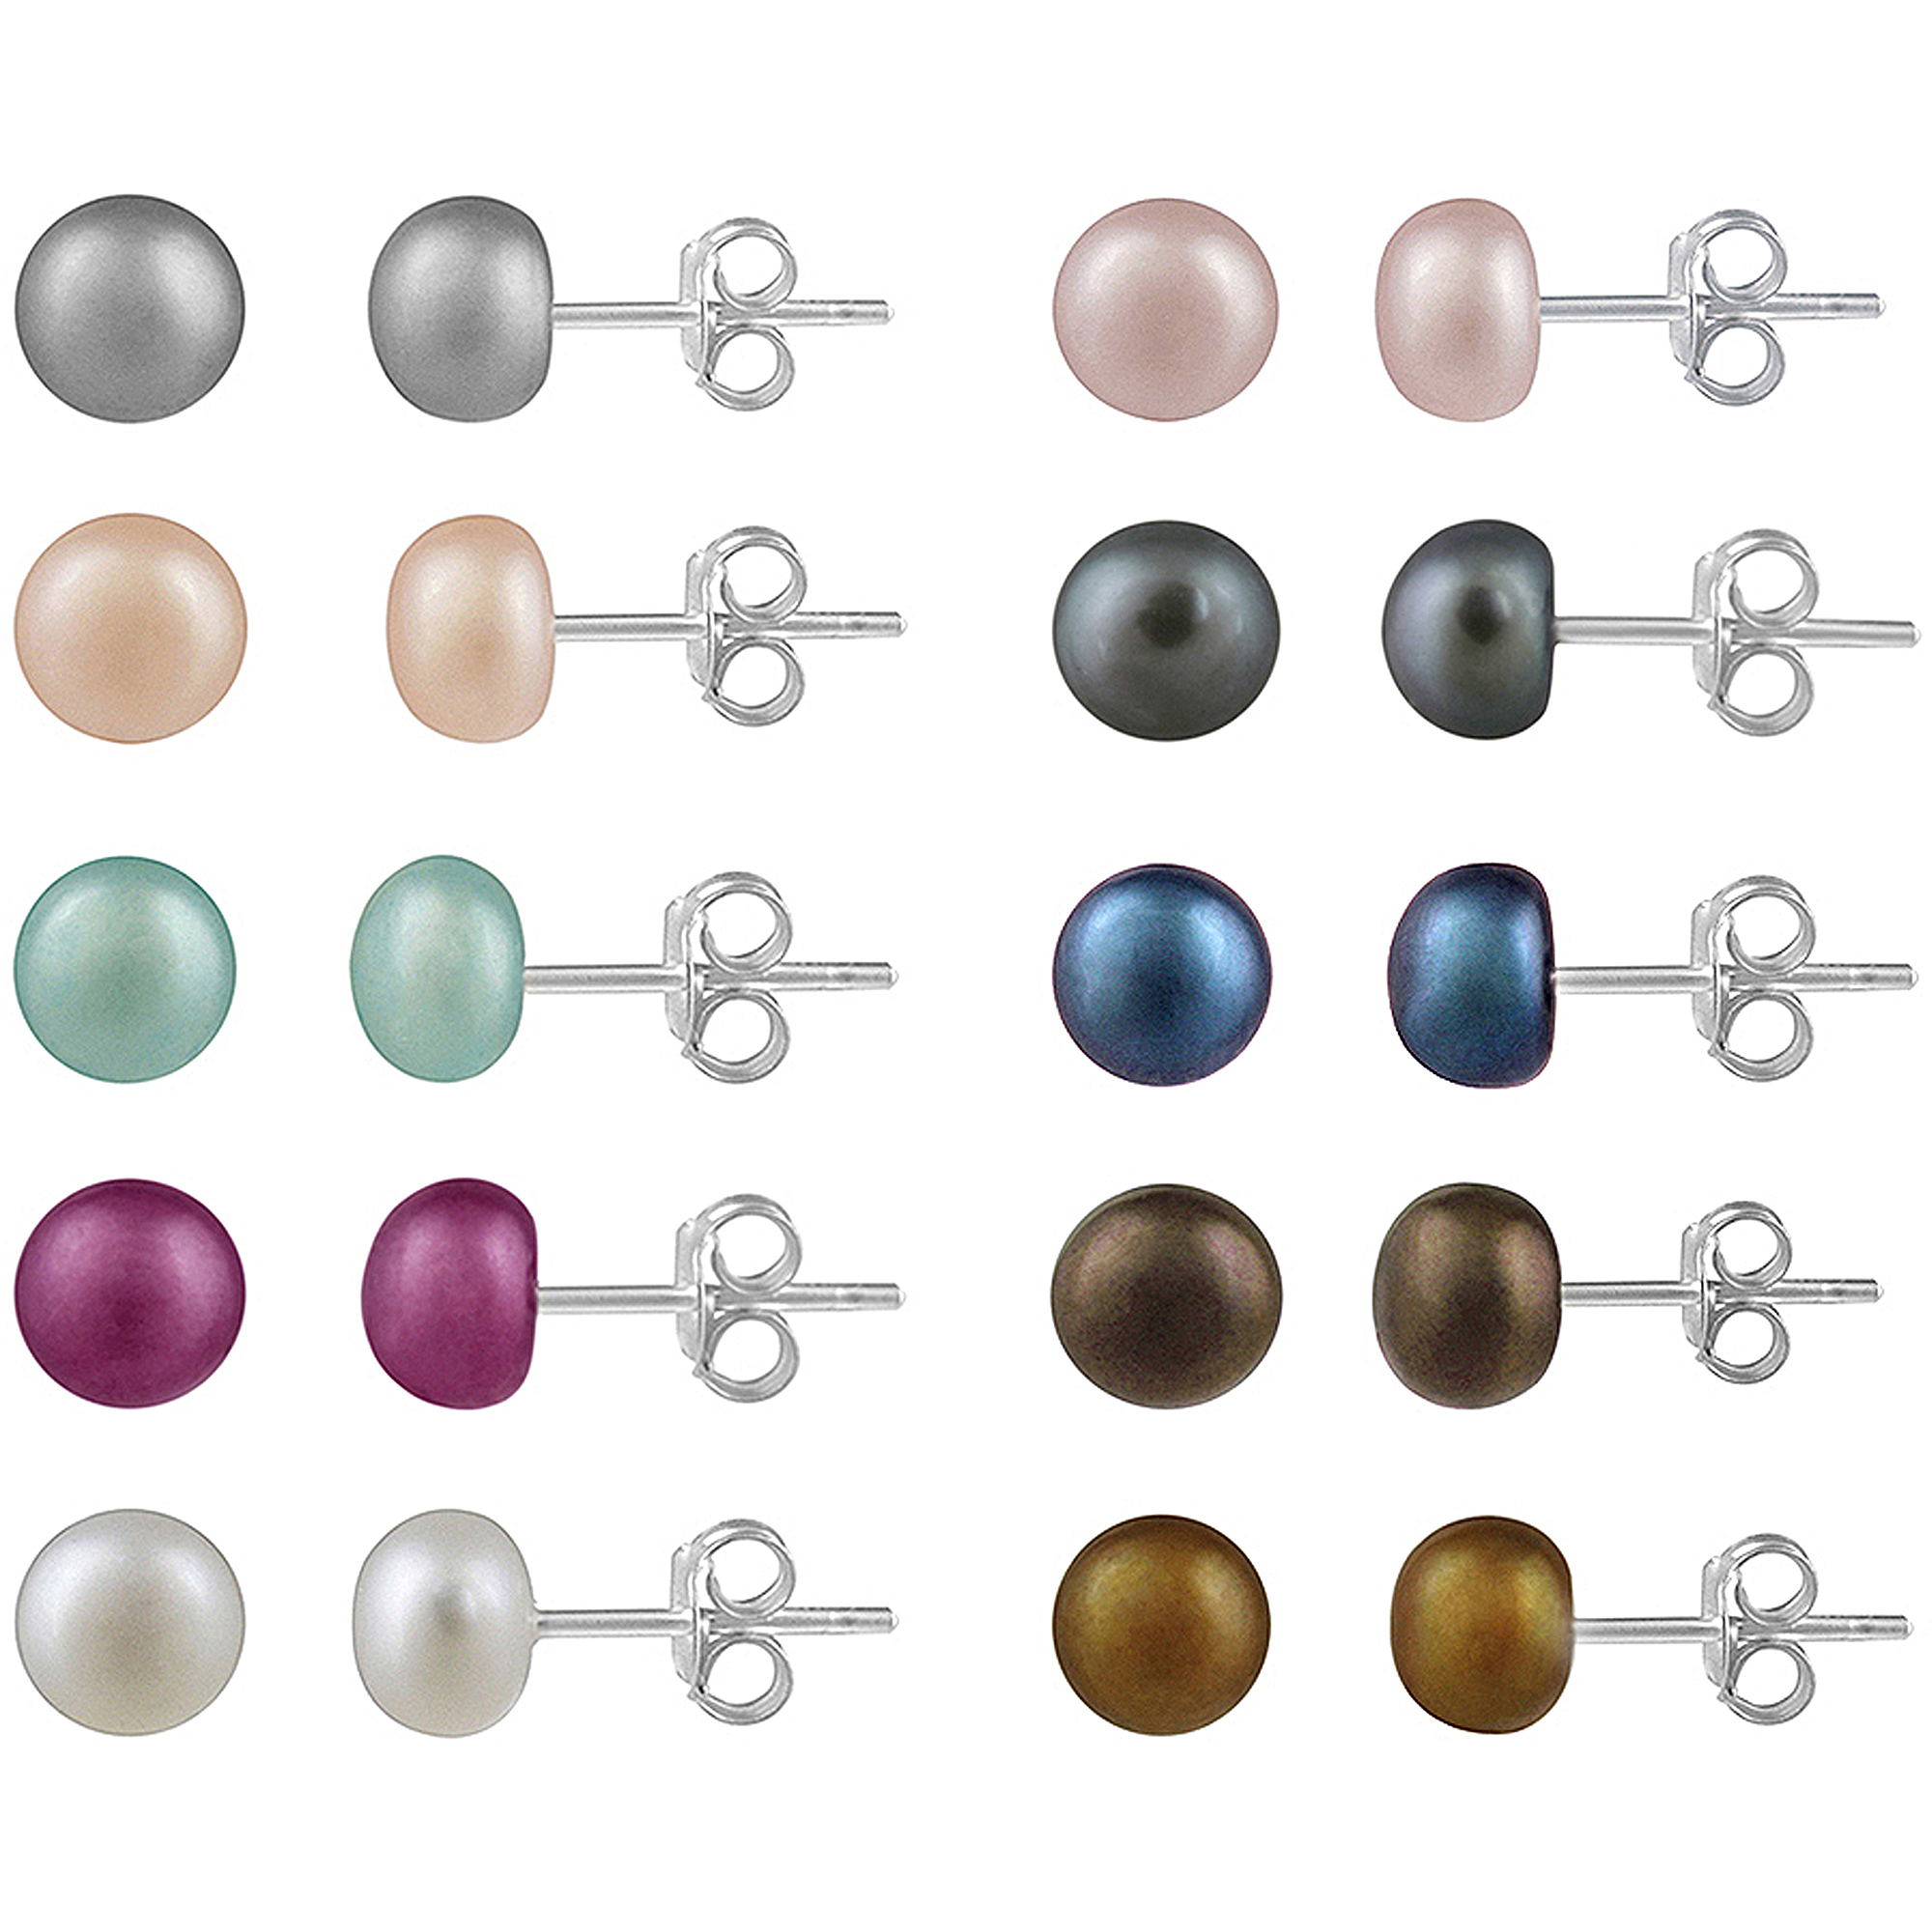 5-5.5mm Freshwater Cultured Pearl Sterling Silver  Multi-Color Stud Earrings, Set of 10